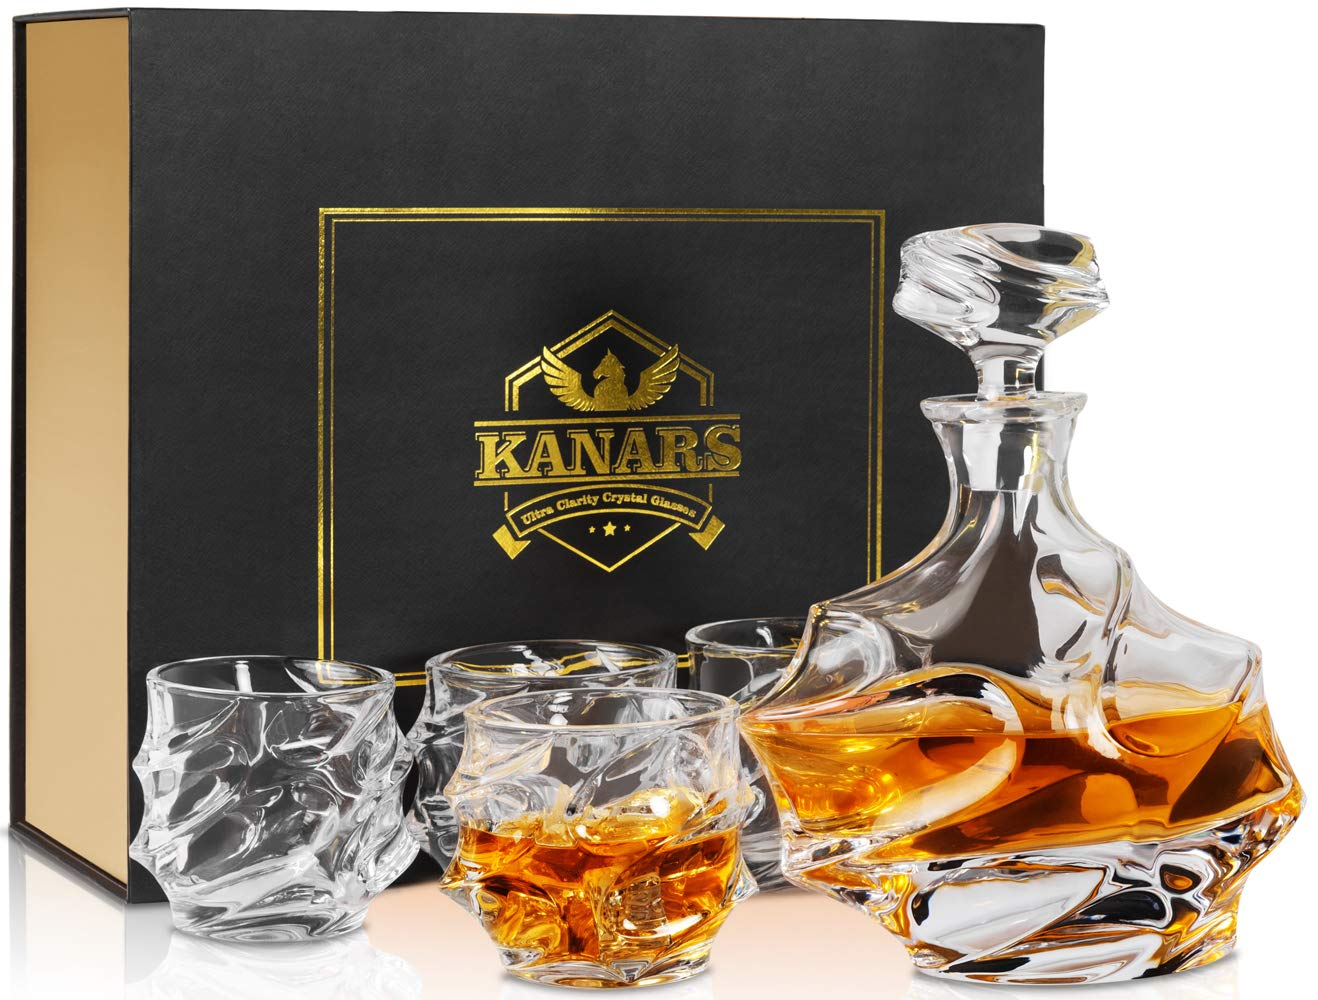 Emperor Whiskey Decanter And Glasses Set With Luxury Gift Box, KANARS Premium Lead Free Crystal Liquor Decanter Set For Irish Whisky, Scotch And Bourbon, 5-Piece by KANARS